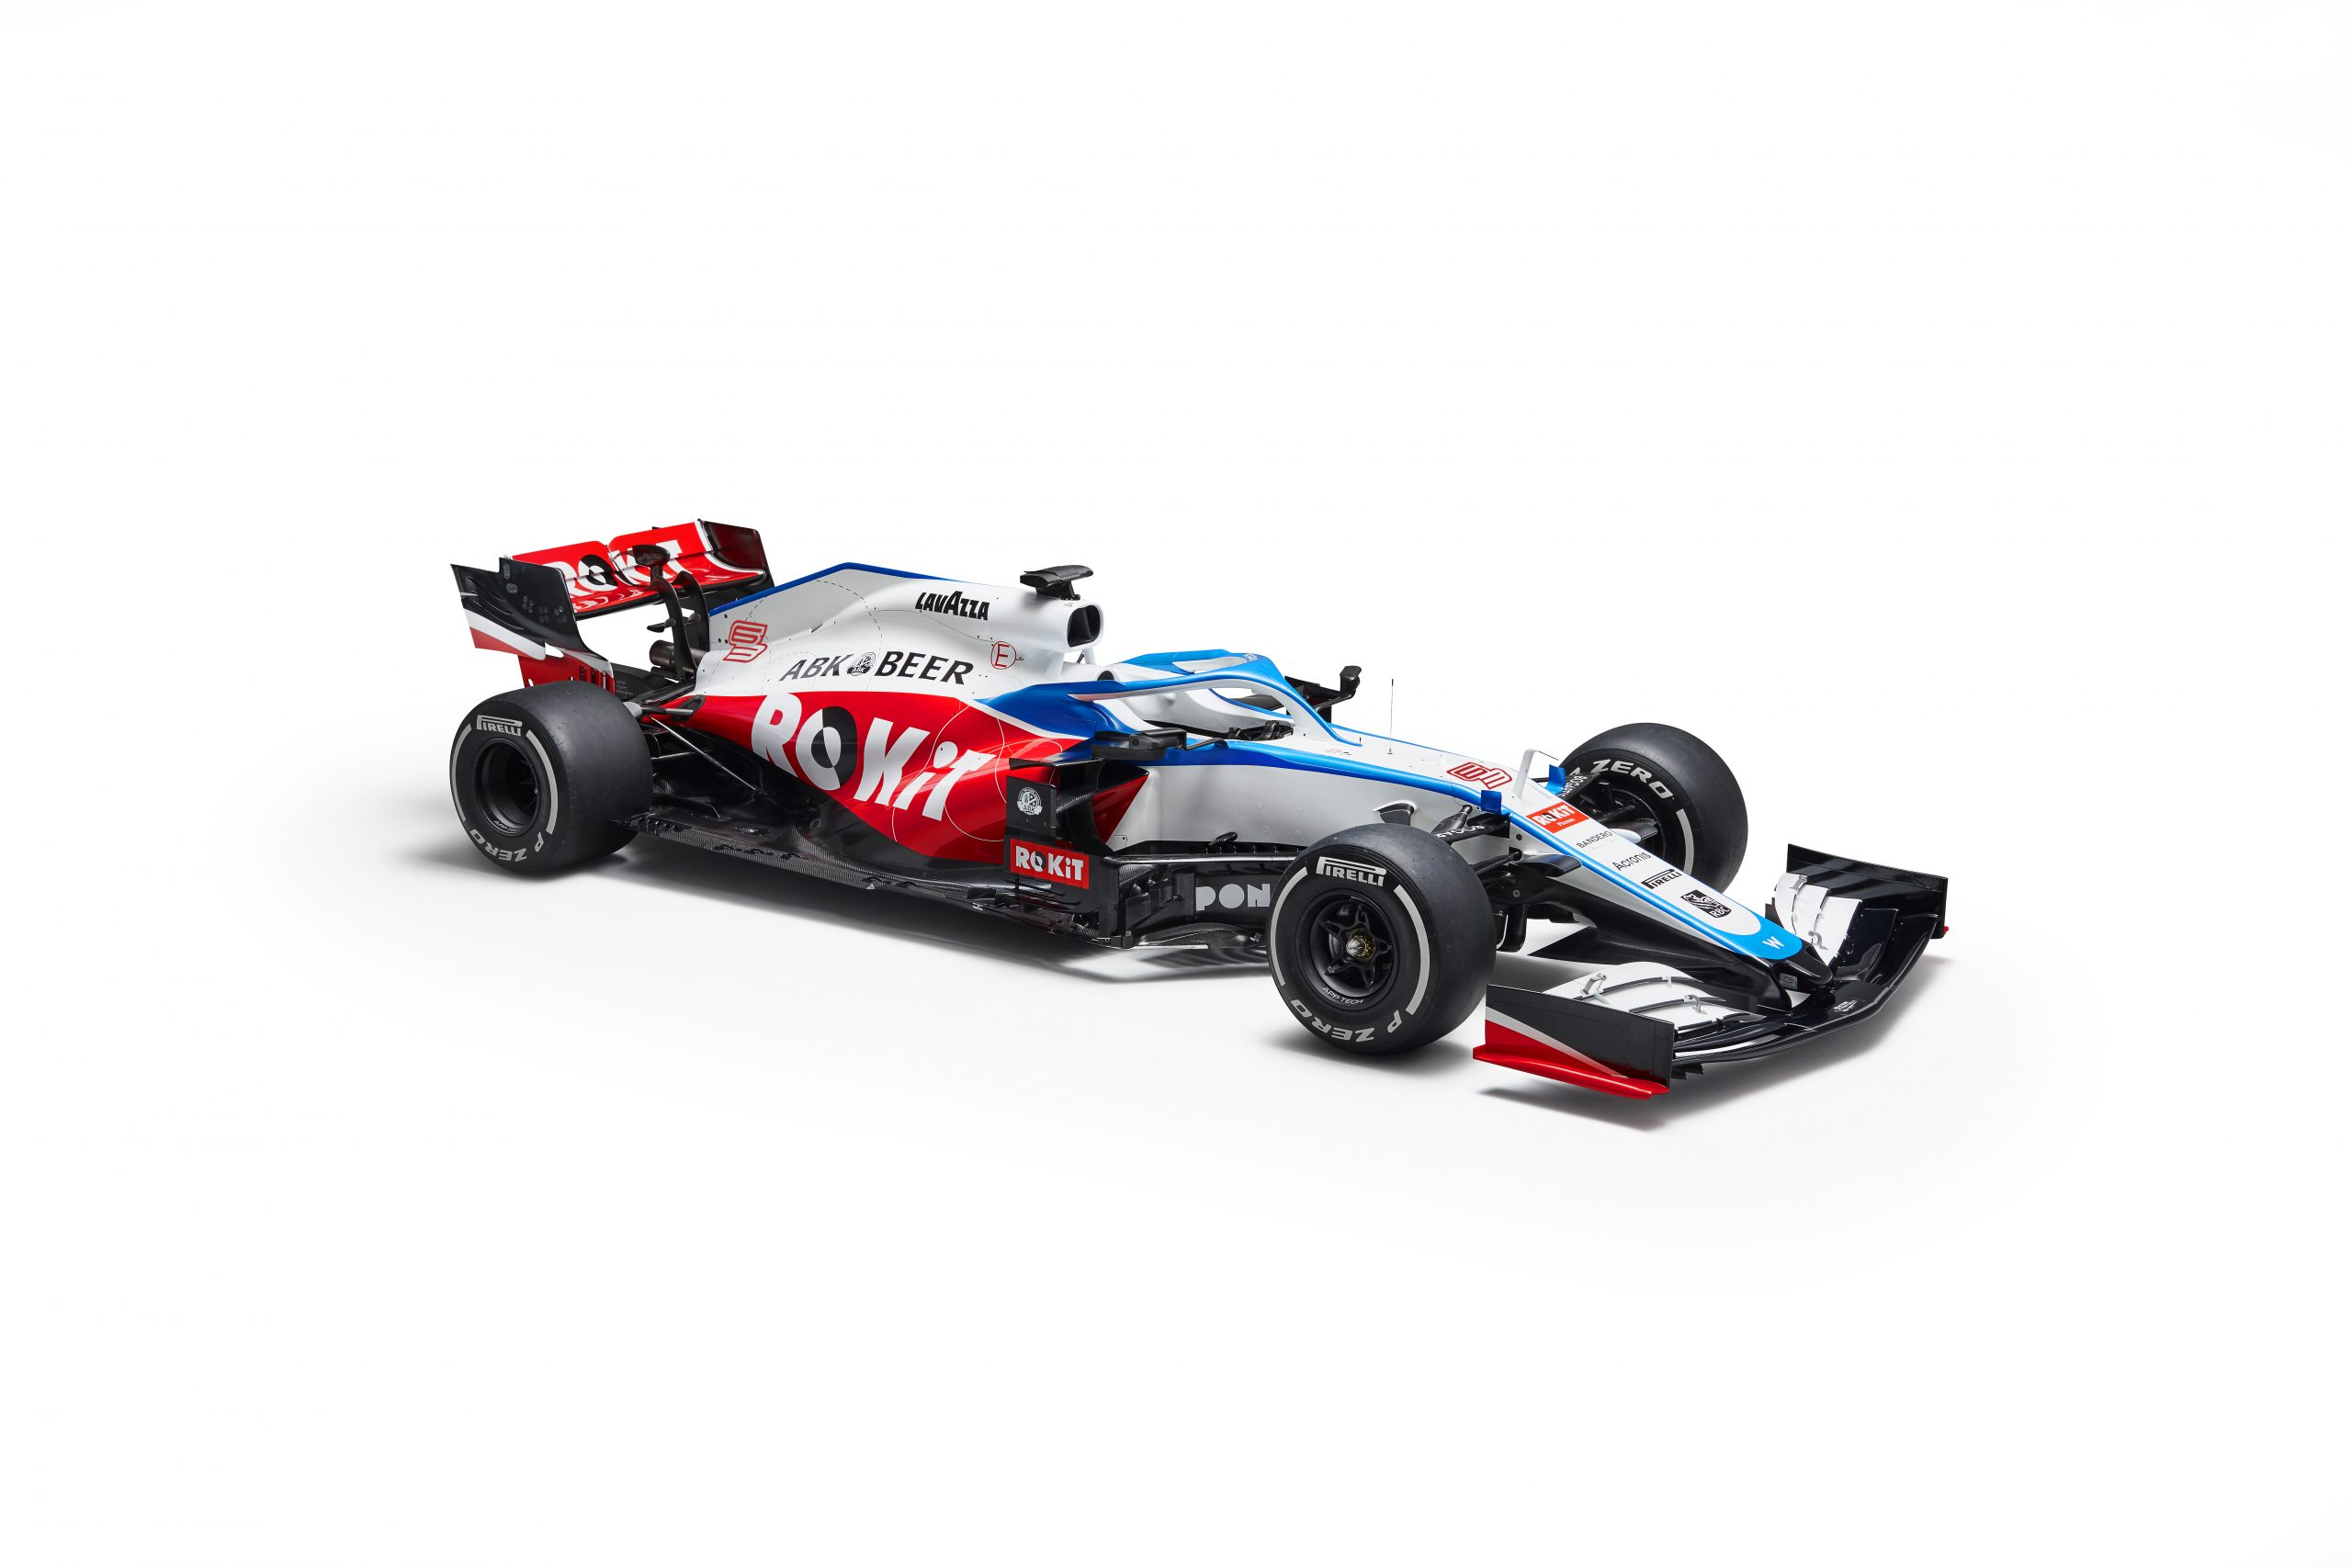 'No Fundamental Concept Changes' on FW43 compared to FW42 - Williams' McKiernan